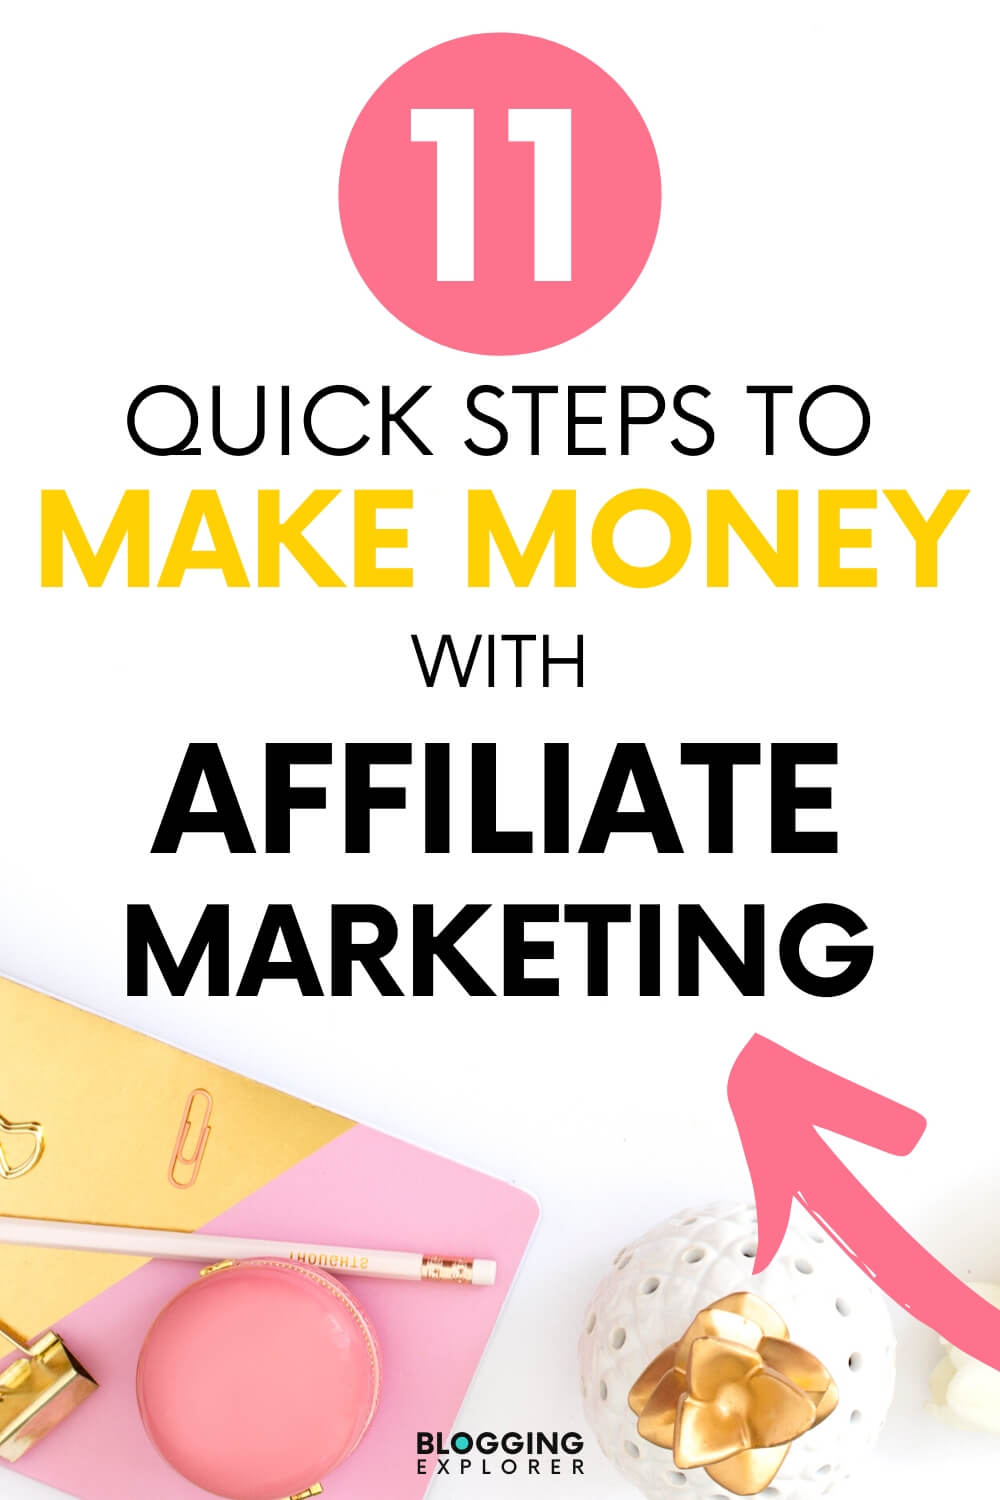 Make money blogging - Affiliate marketing for dummies